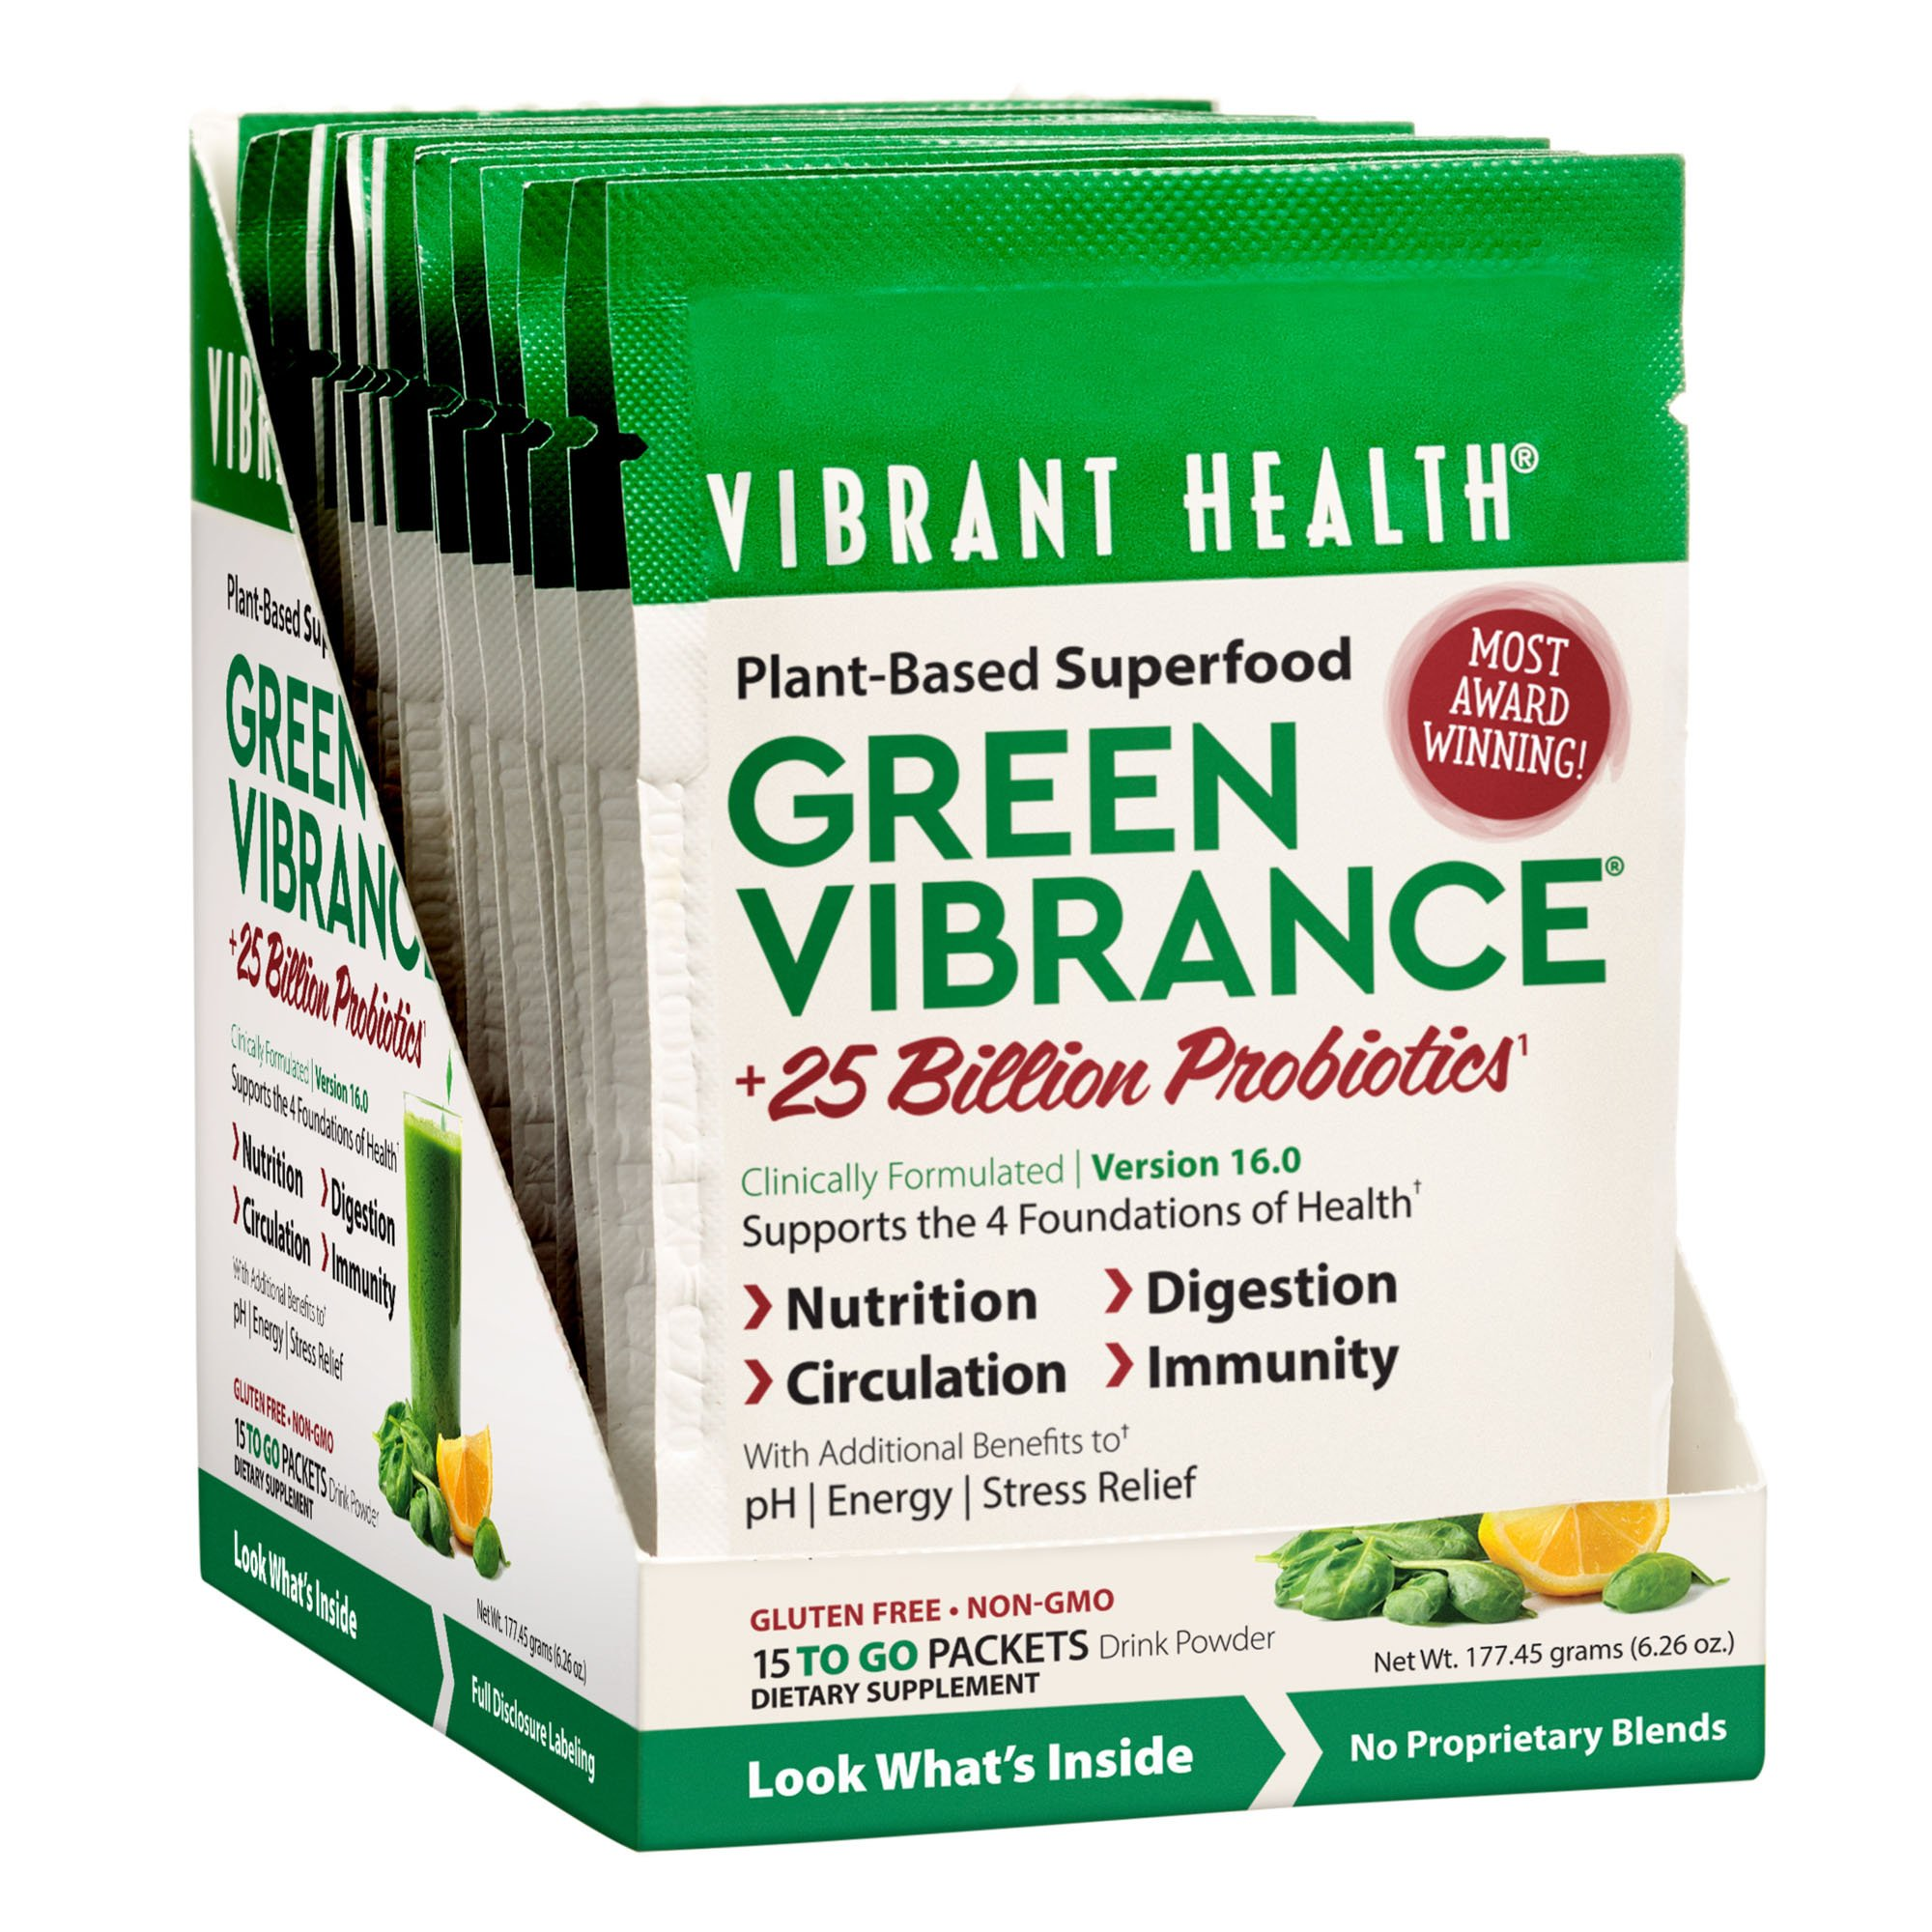 Vibrant Health - Green Vibrance, Plant-based Daily Superfood + Protein and Antioxidants, 15 Packets by Vibrant Health (Image #2)